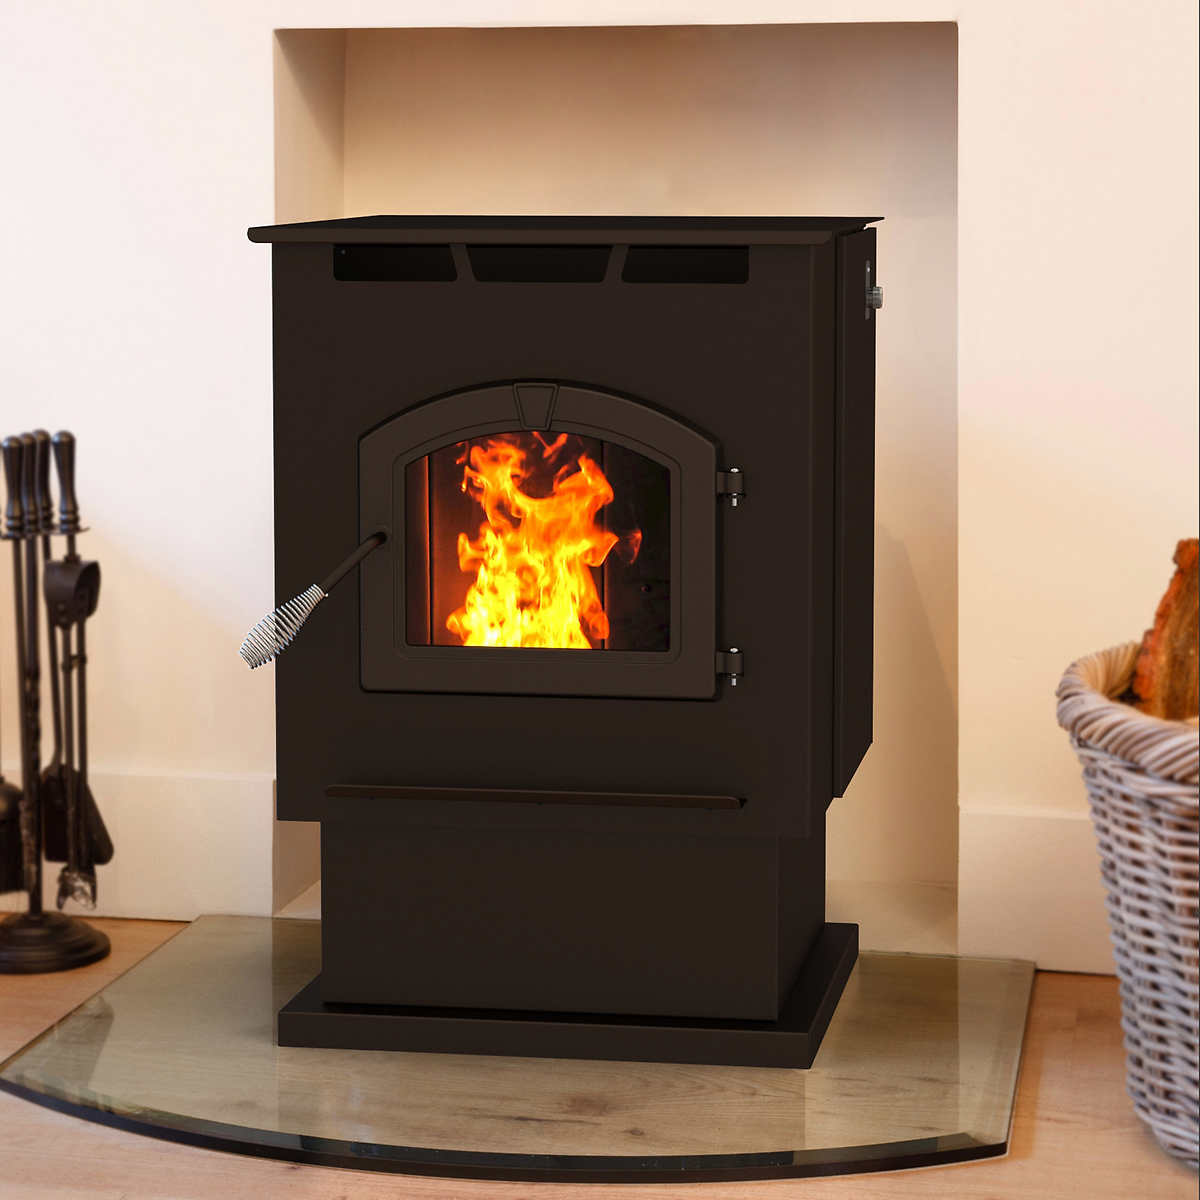 pleasant hearth large wood stove with blower